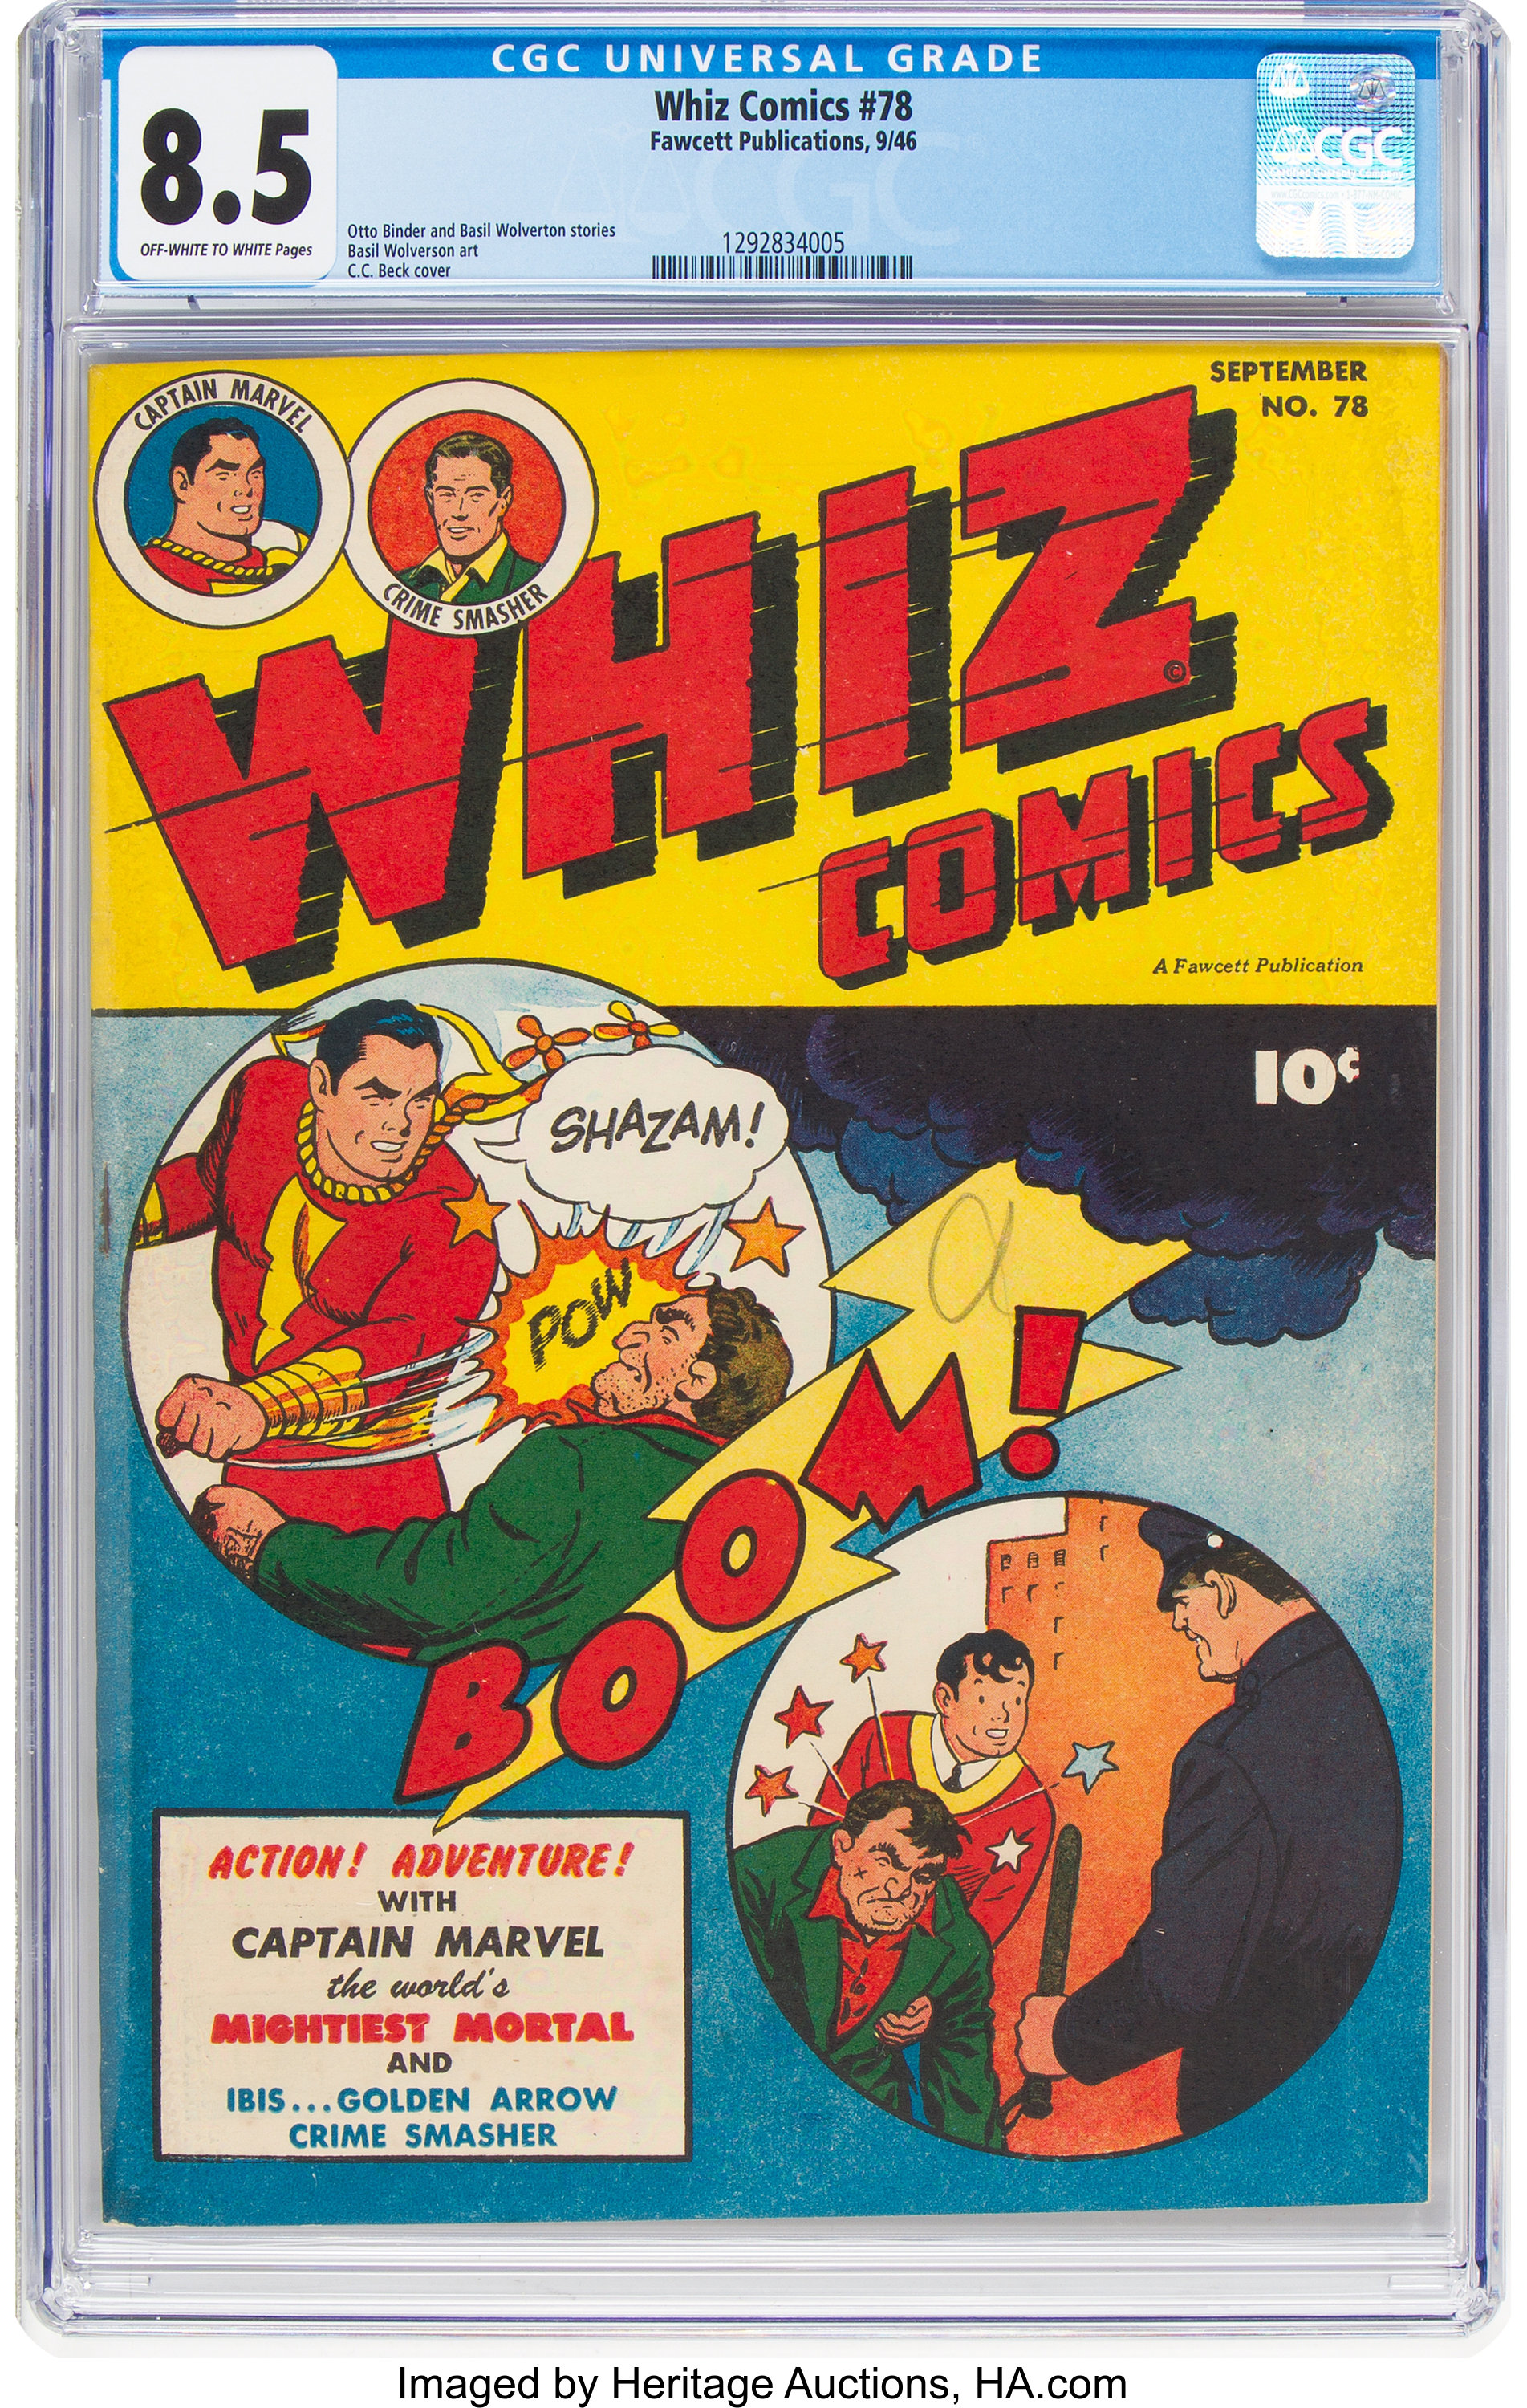 WHIZ COMICS #78 1946-CAPTAIN MARVEL-CRIME SMASHER VG